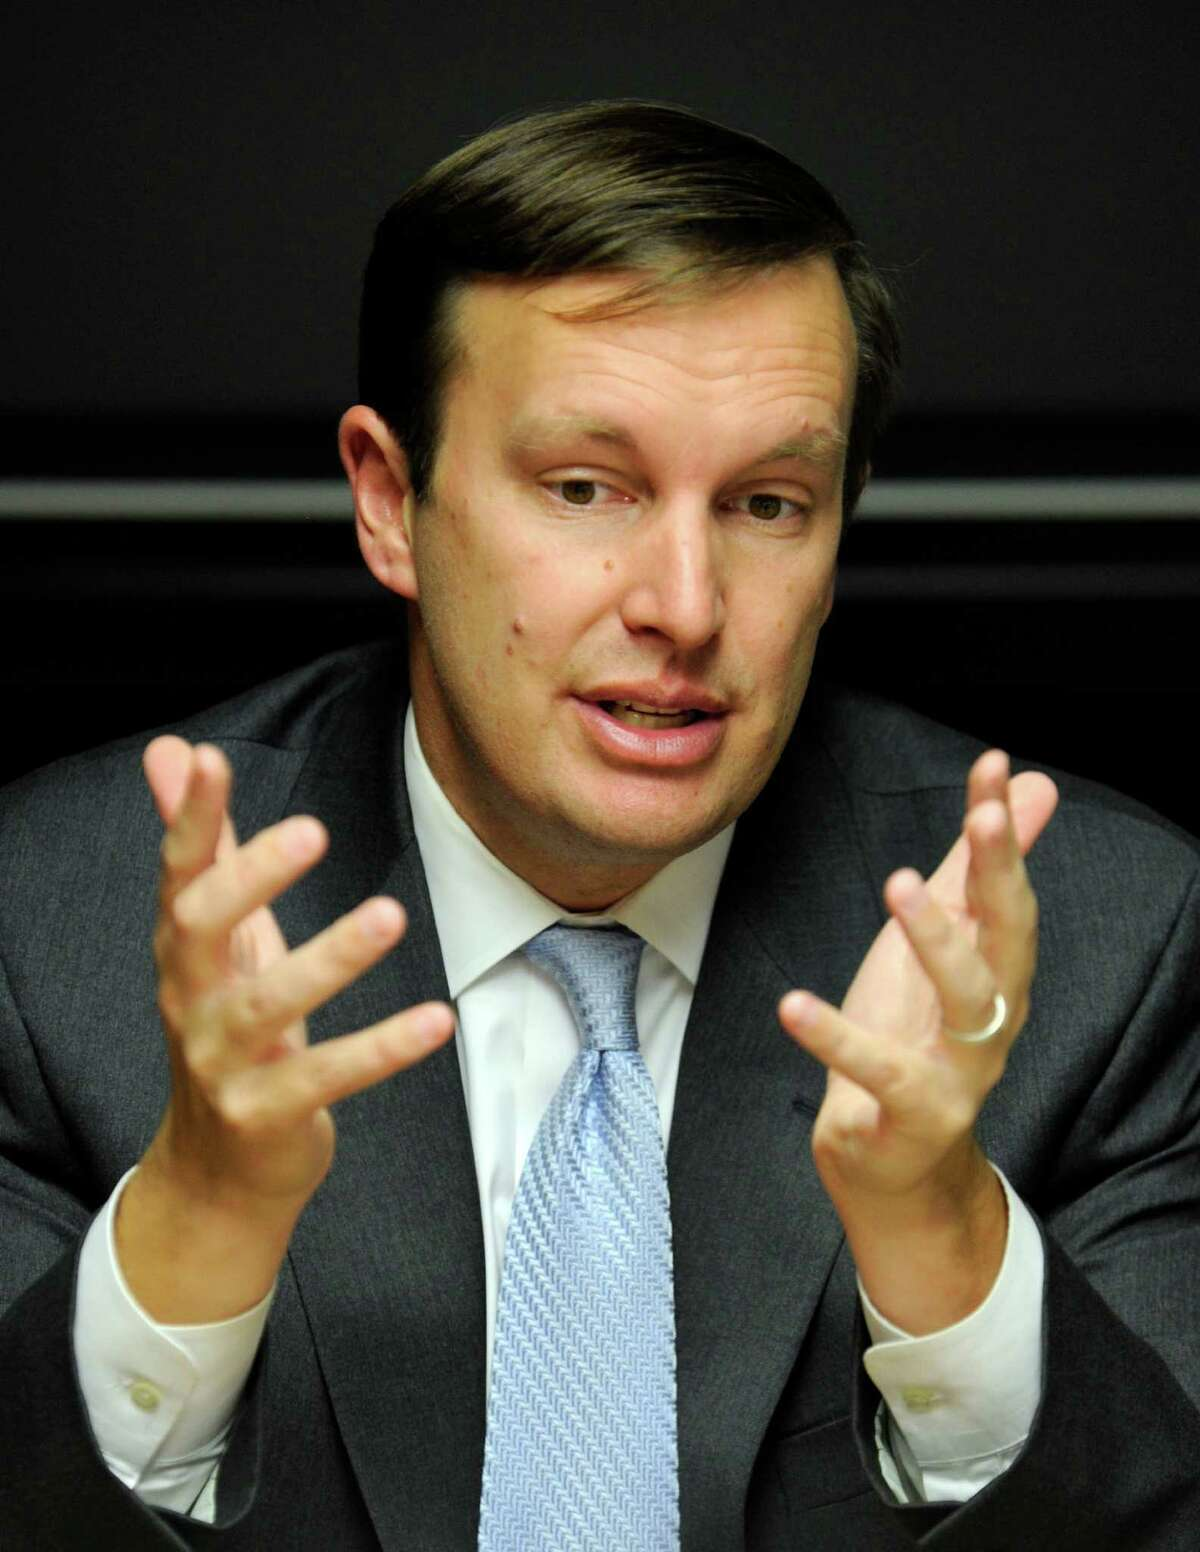 Congressman Chris Murphy meets with The News-Times editorial board Tuesday, Oct. 16, 2012.